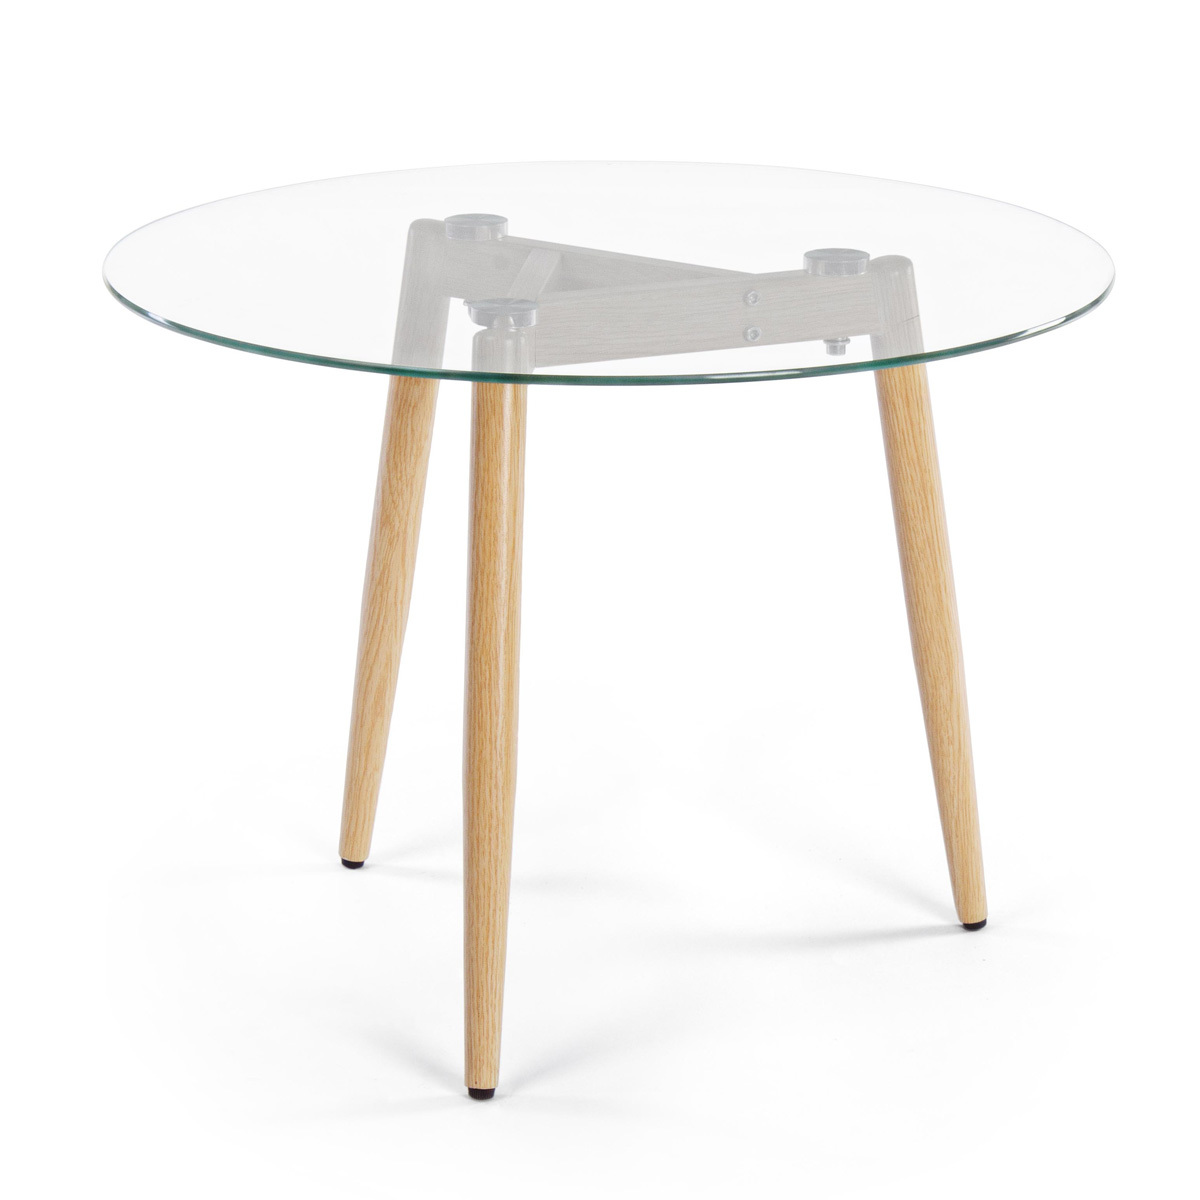 Photos 1: Bizzotto Table in metal and glass d.60 0730794